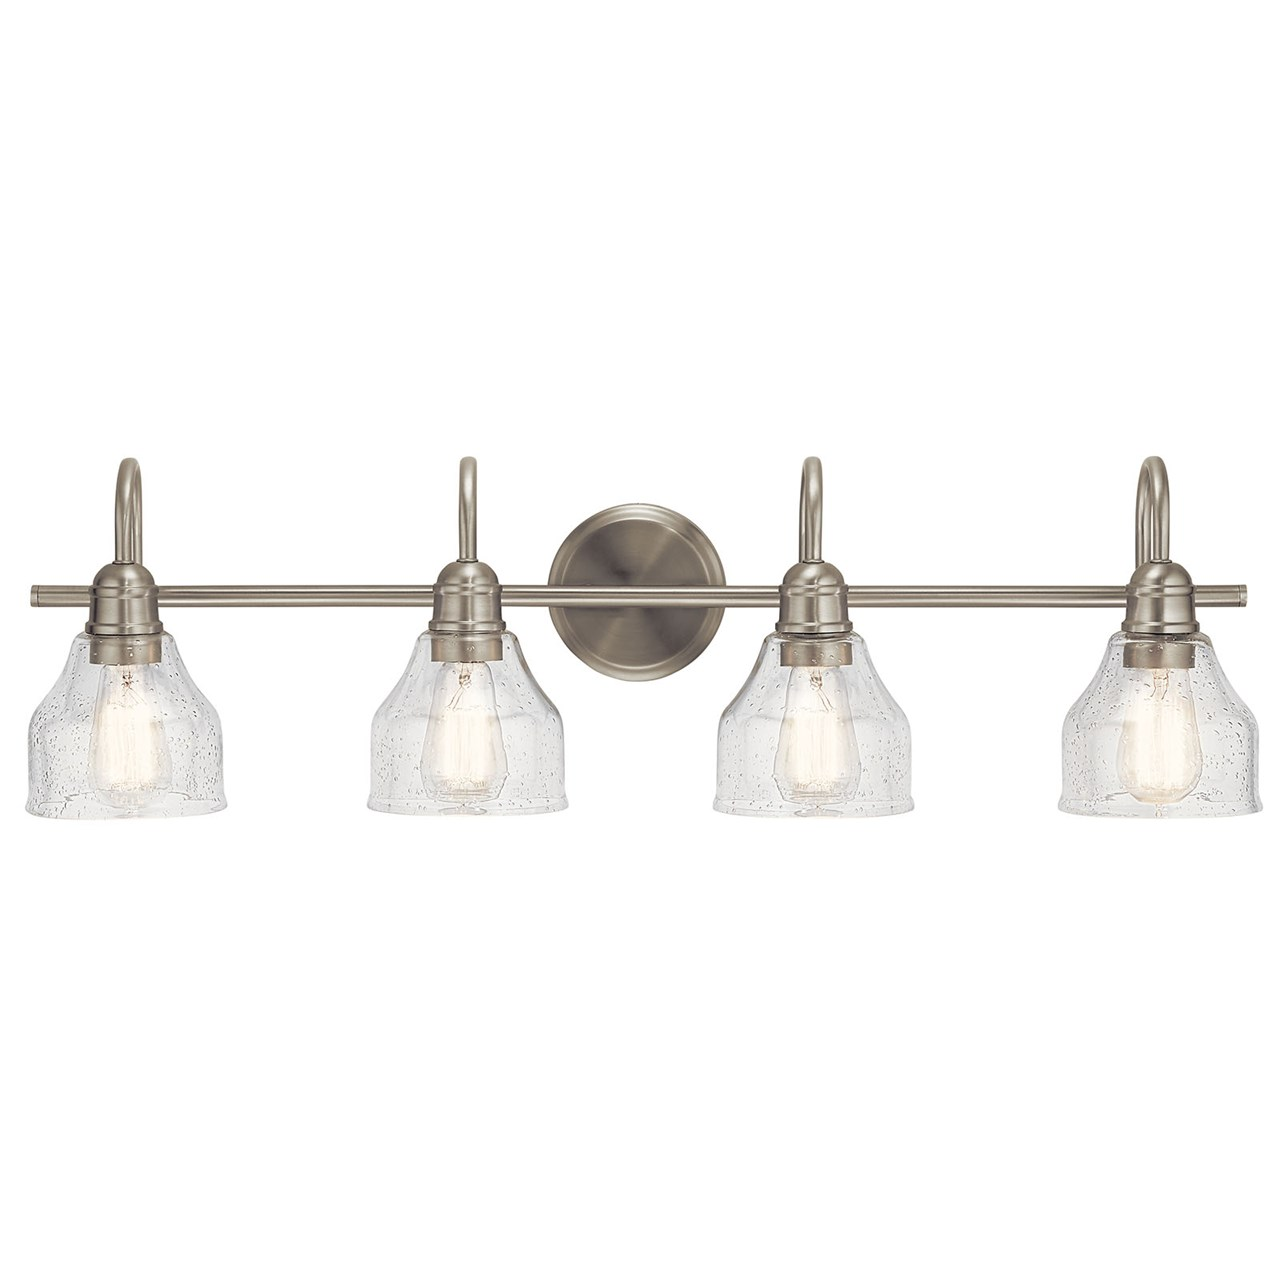 Avery™ 4 Light Vanity Light Brushed Nickel